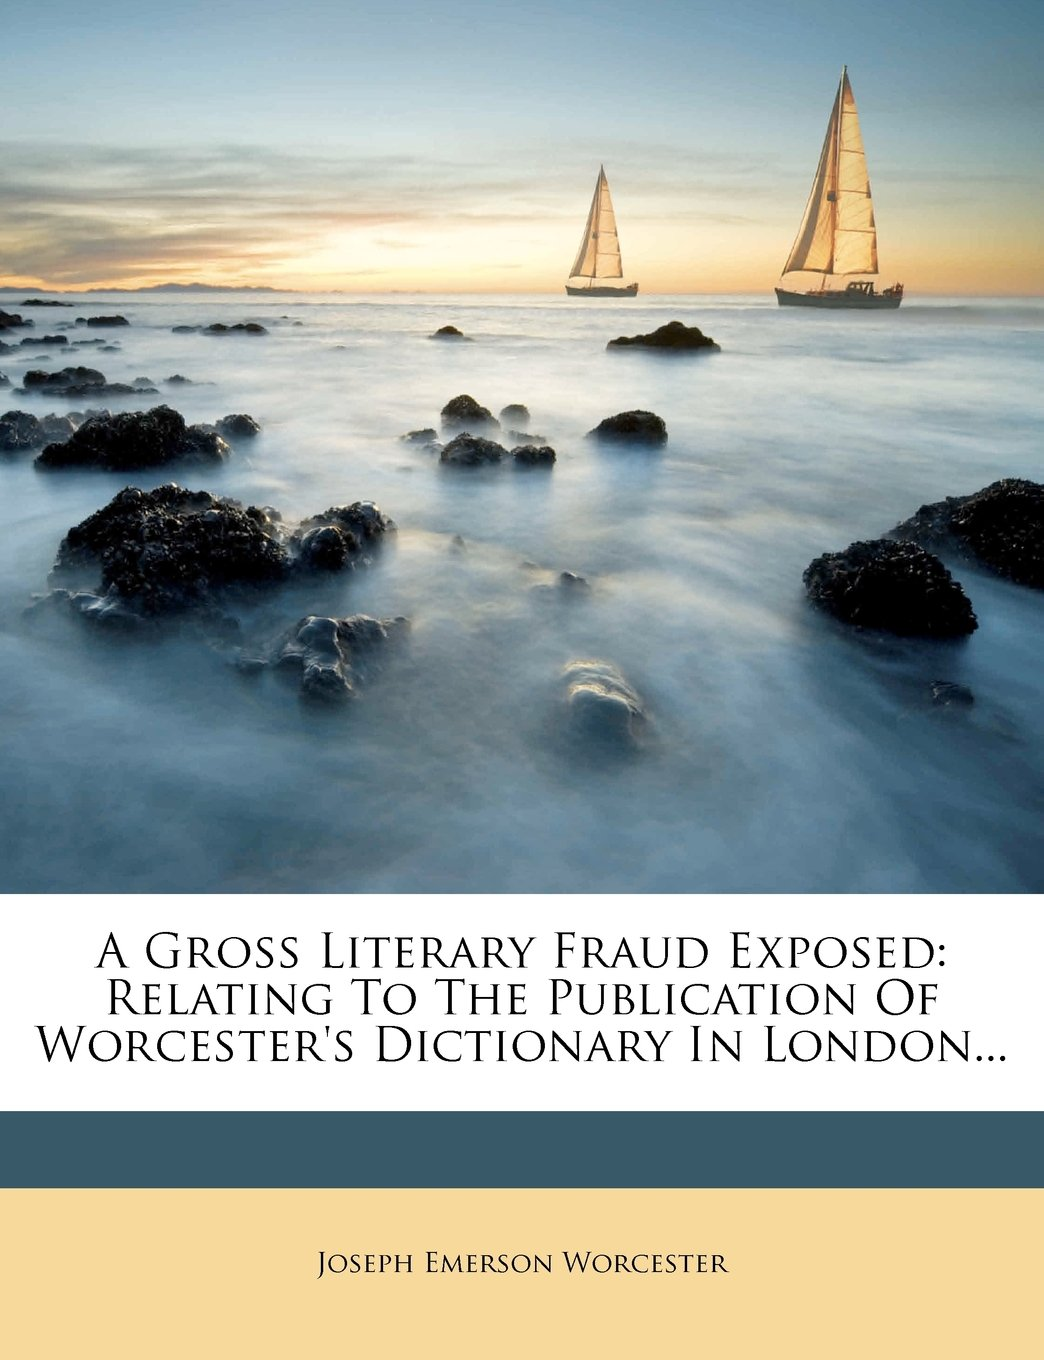 Download A Gross Literary Fraud Exposed: Relating To The Publication Of Worcester's Dictionary In London... ebook